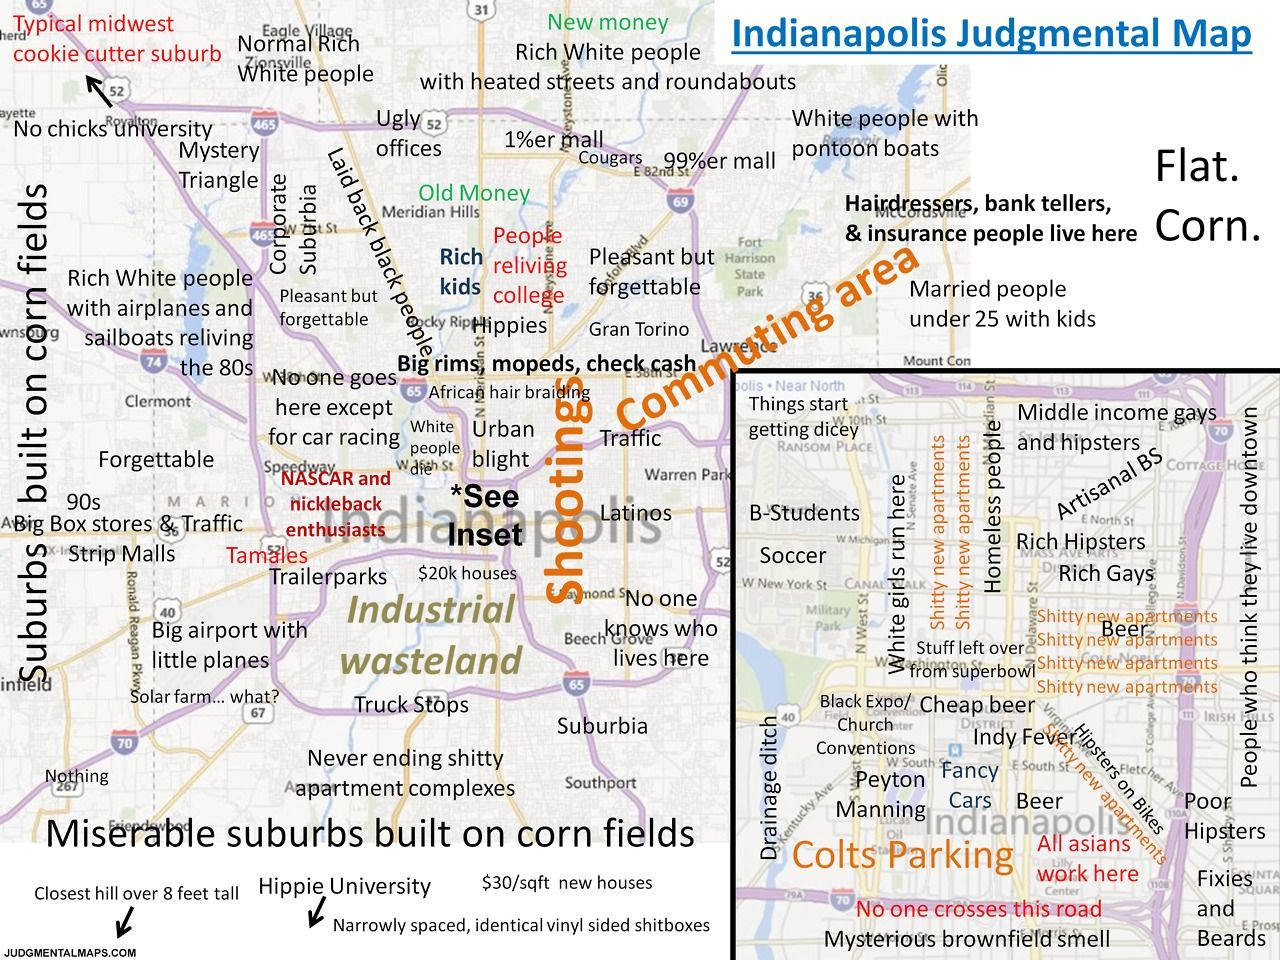 Best Judgmental Maps Images On Pinterest - Los angeles map funny